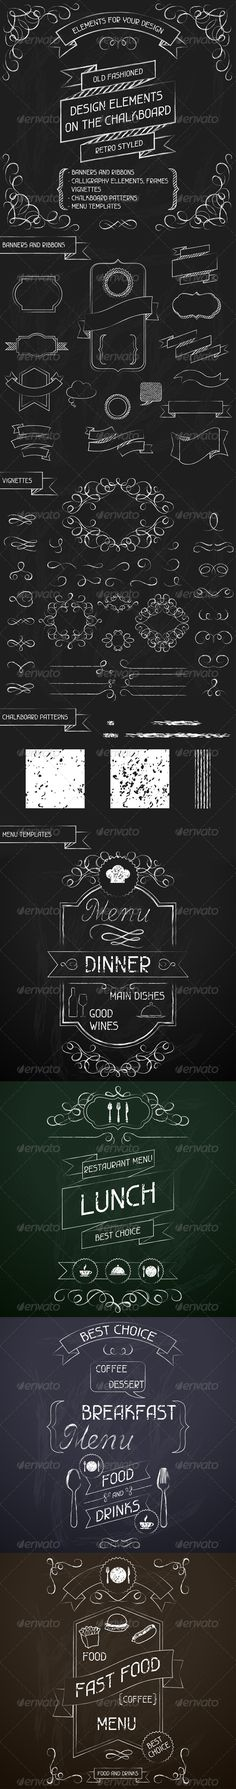 Design Elements on the Chalkboard - Decorative Symbols Decorative/a chalkboard background could be appropriate for one or more poems